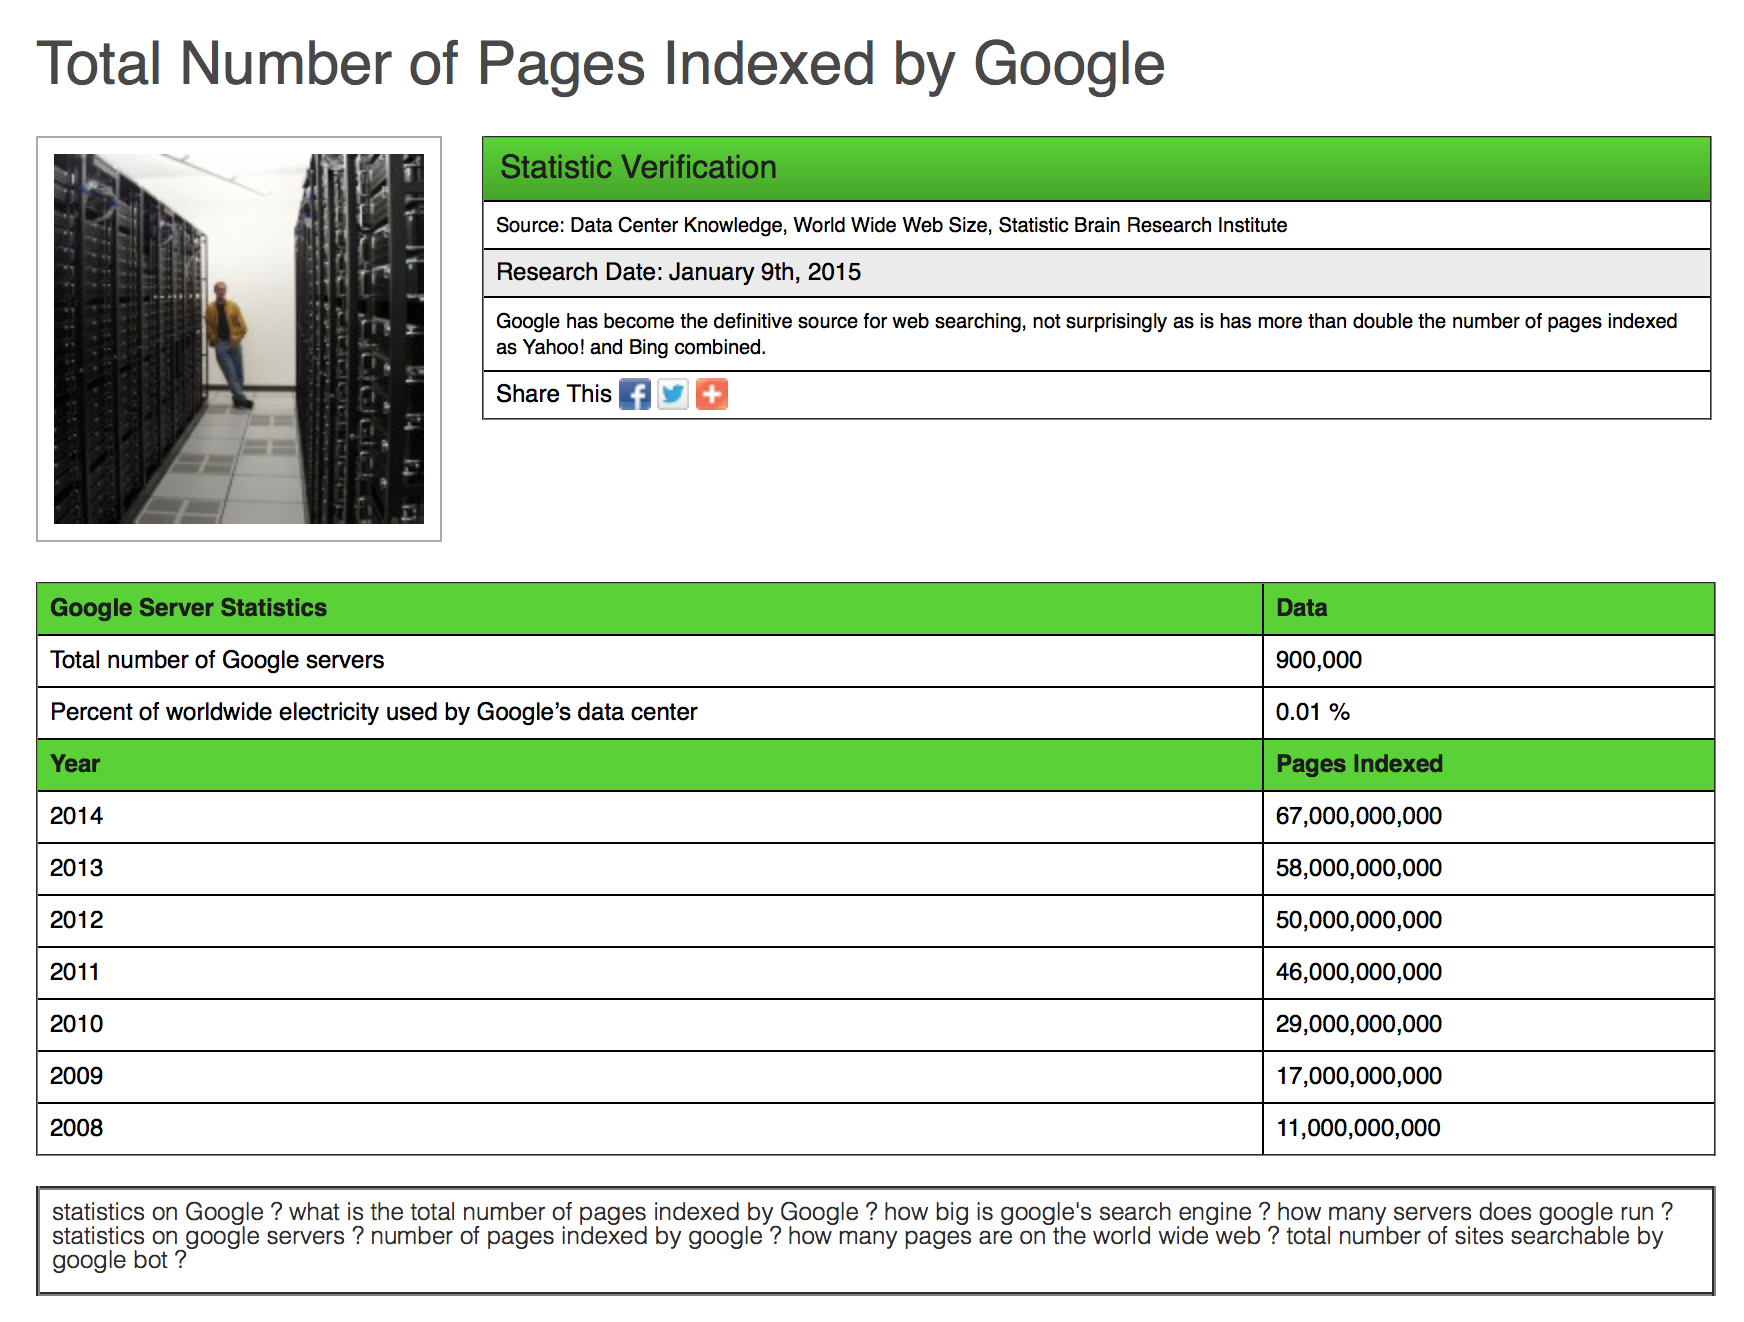 How many sites does Google have indexed